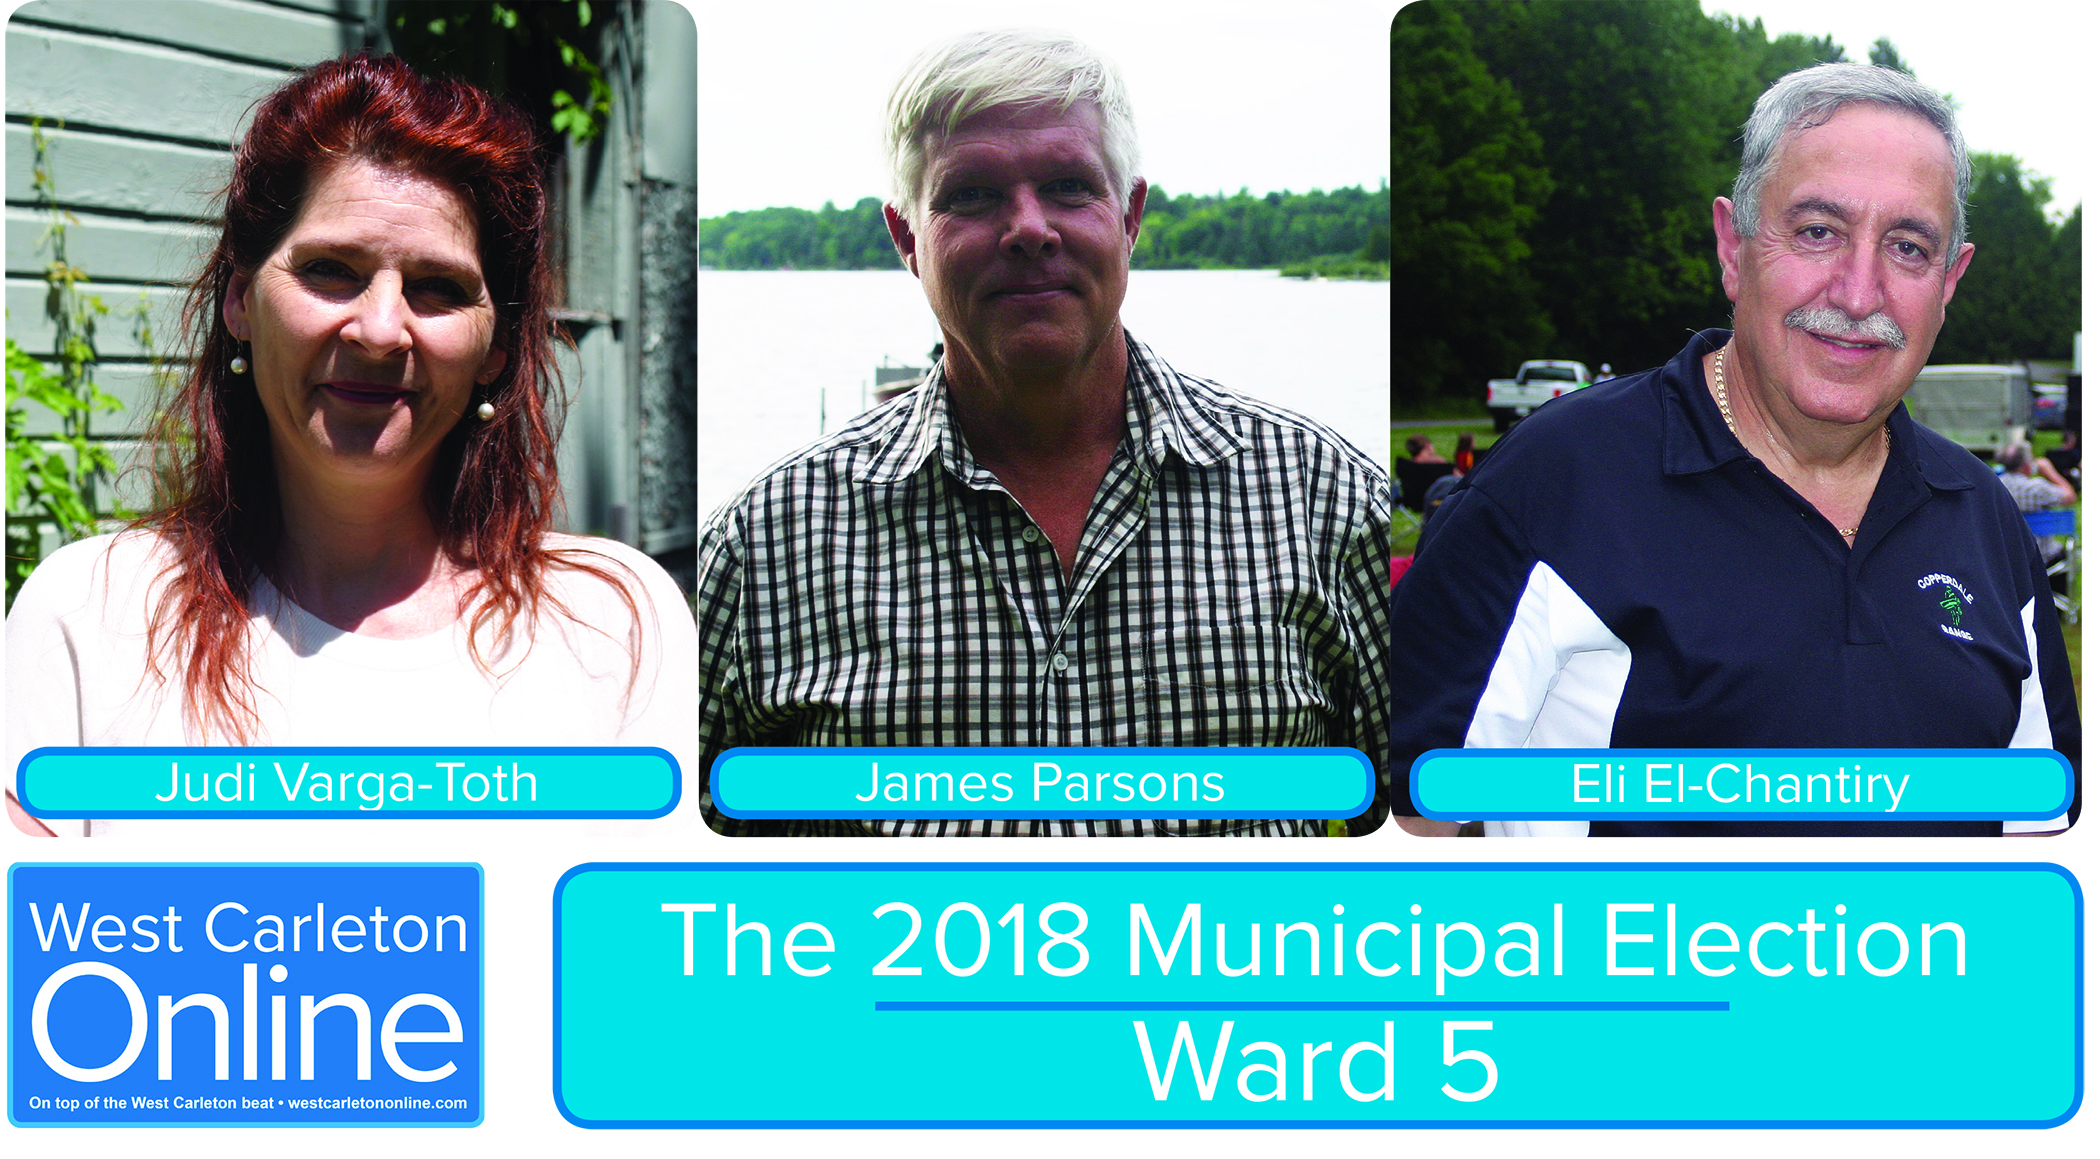 Ward 5 candidates: The last word